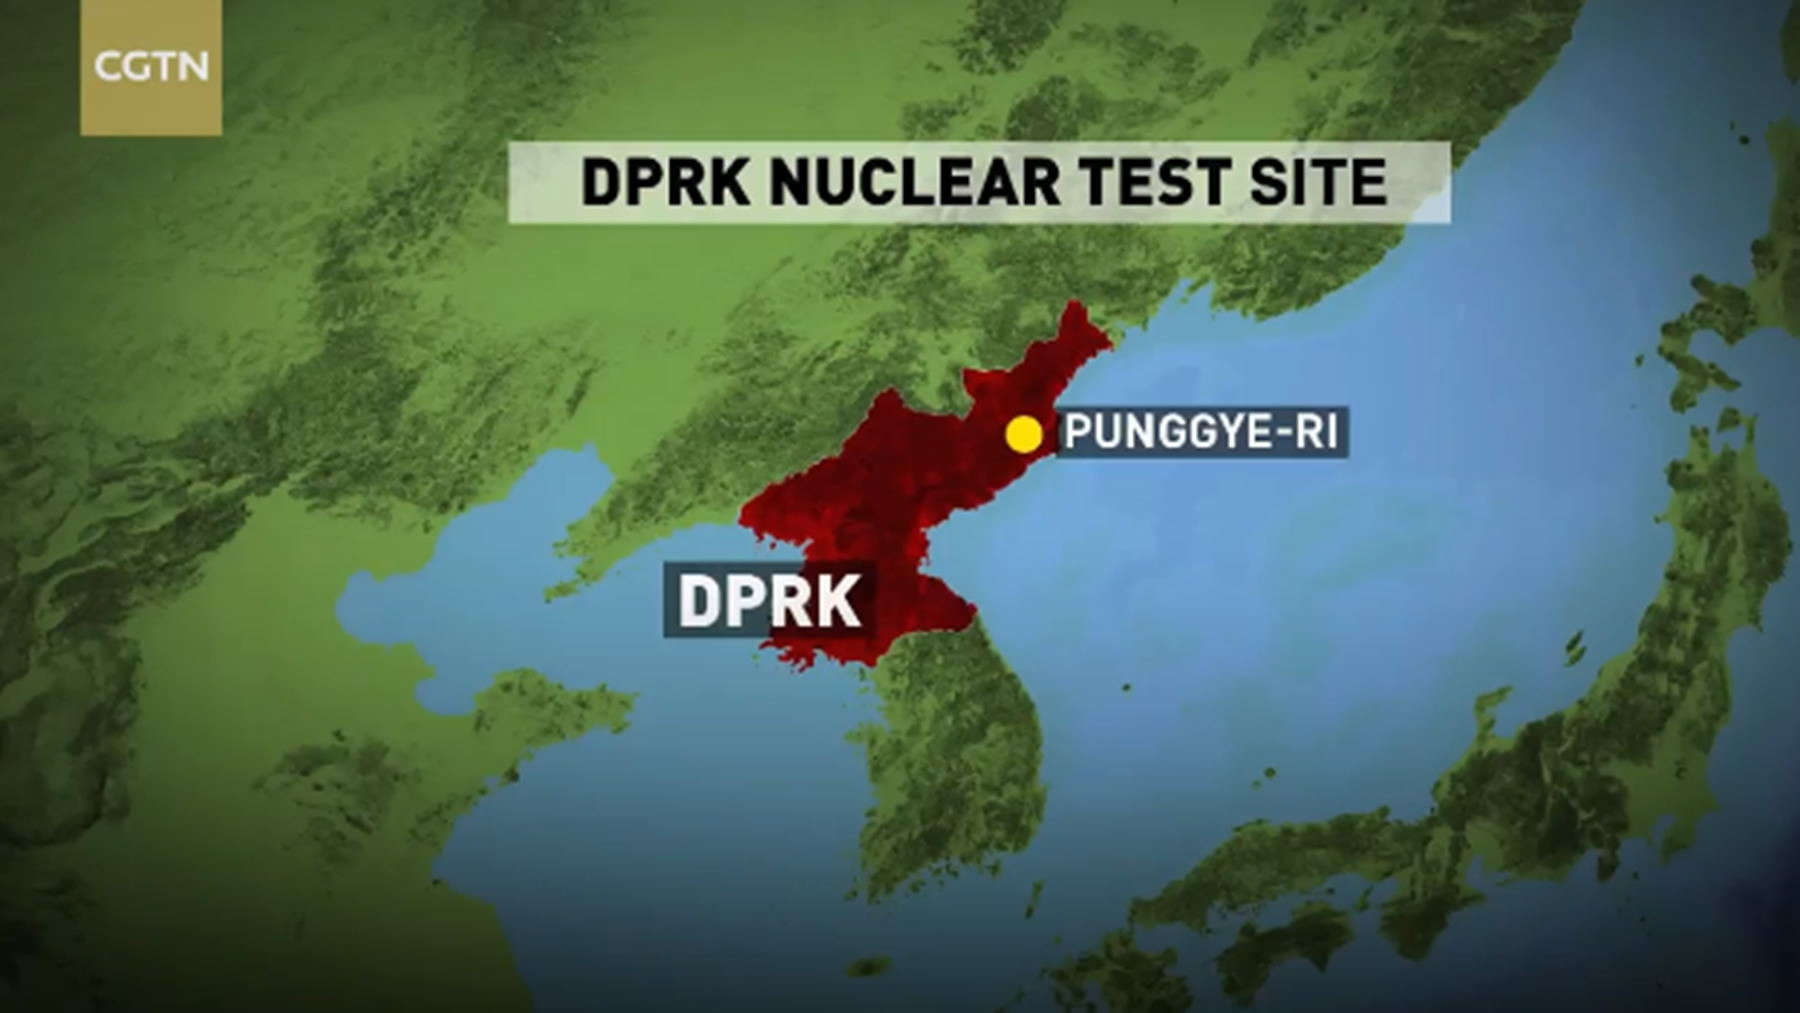 Foreign journalists fly to DPRK to watch closure of nuclear site from Beijing